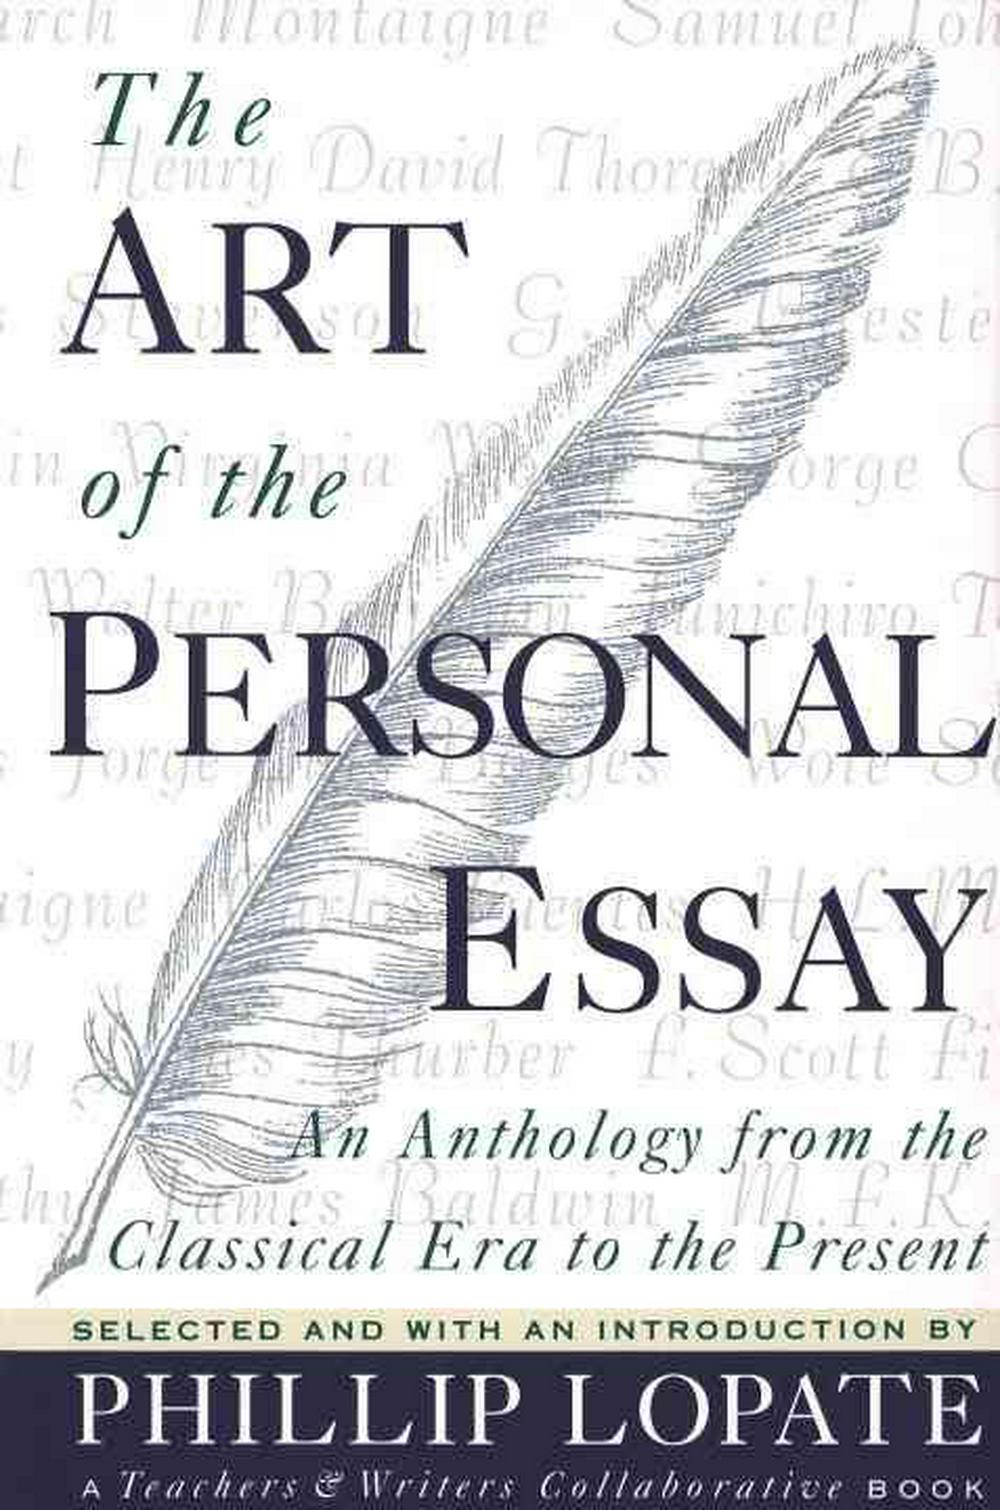 The Art of the Personal Essay: An Anthology from the Classical Era to the Present by Phillip Lopate, ISBN: 9780385423397